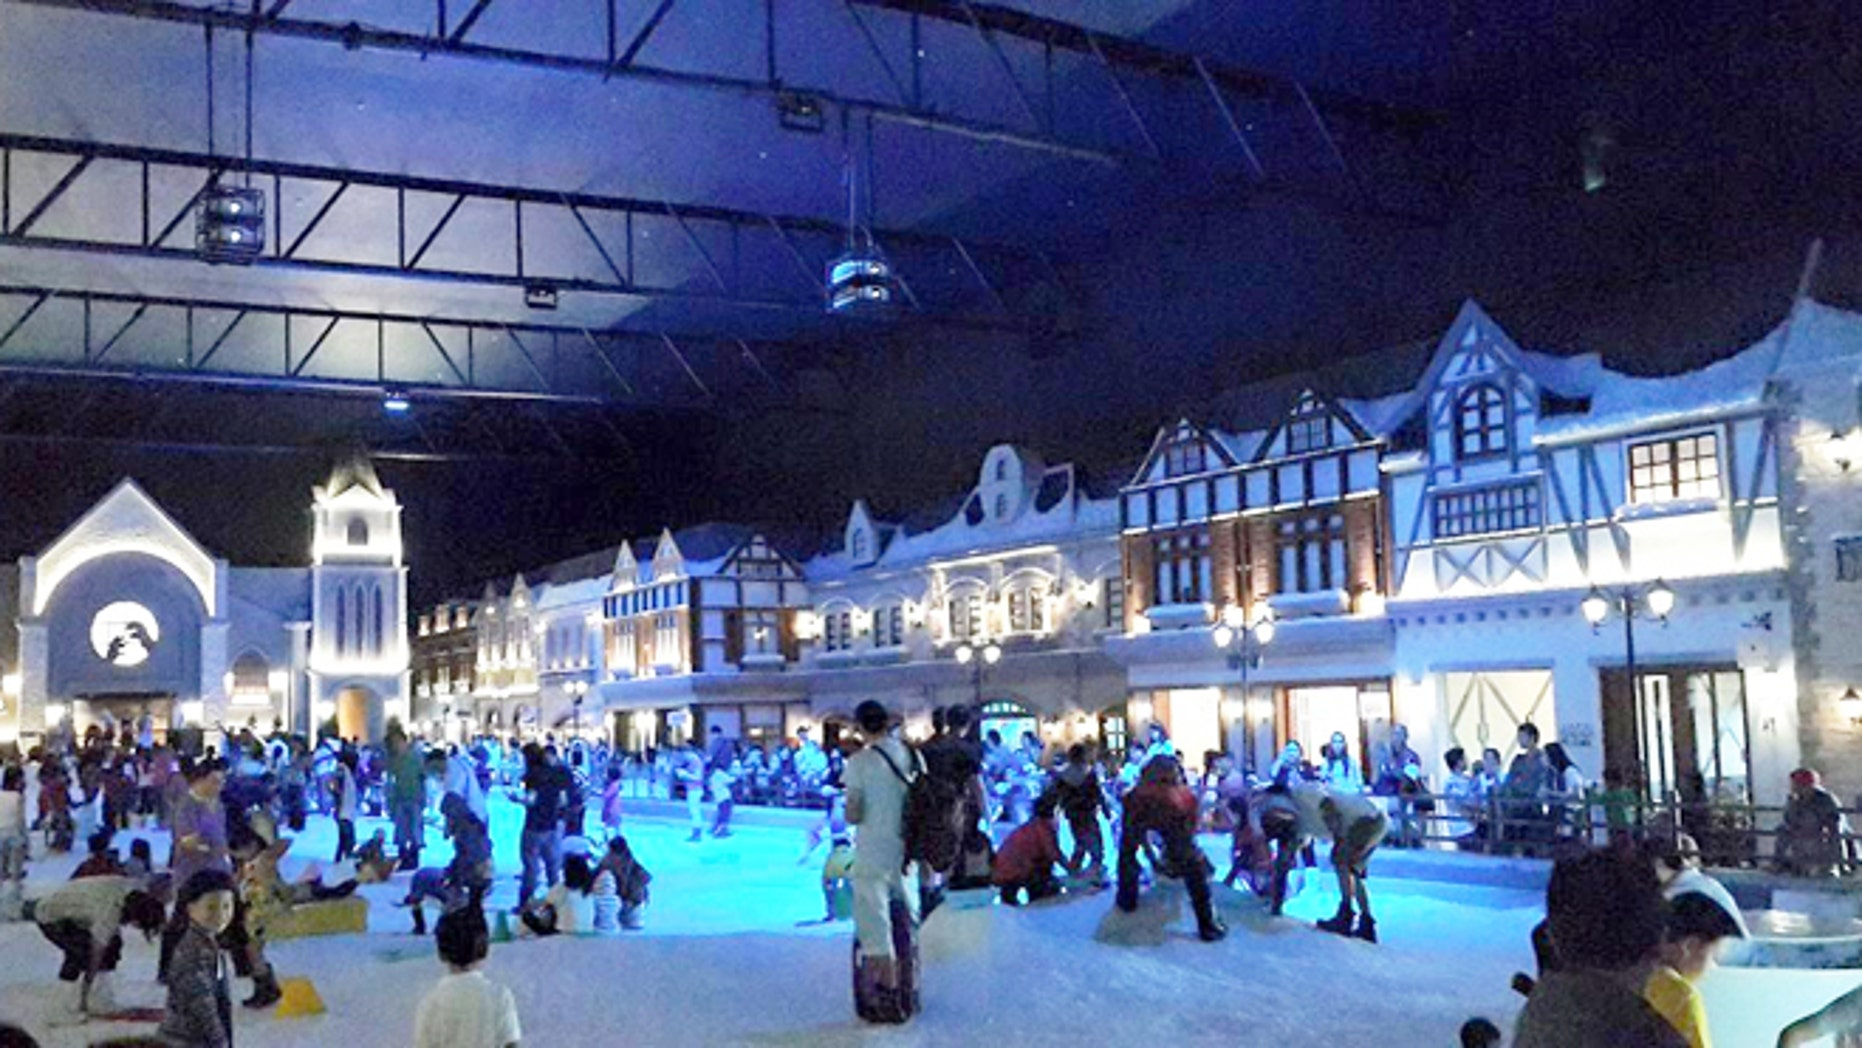 The sprawling indoor attraction features real snow.